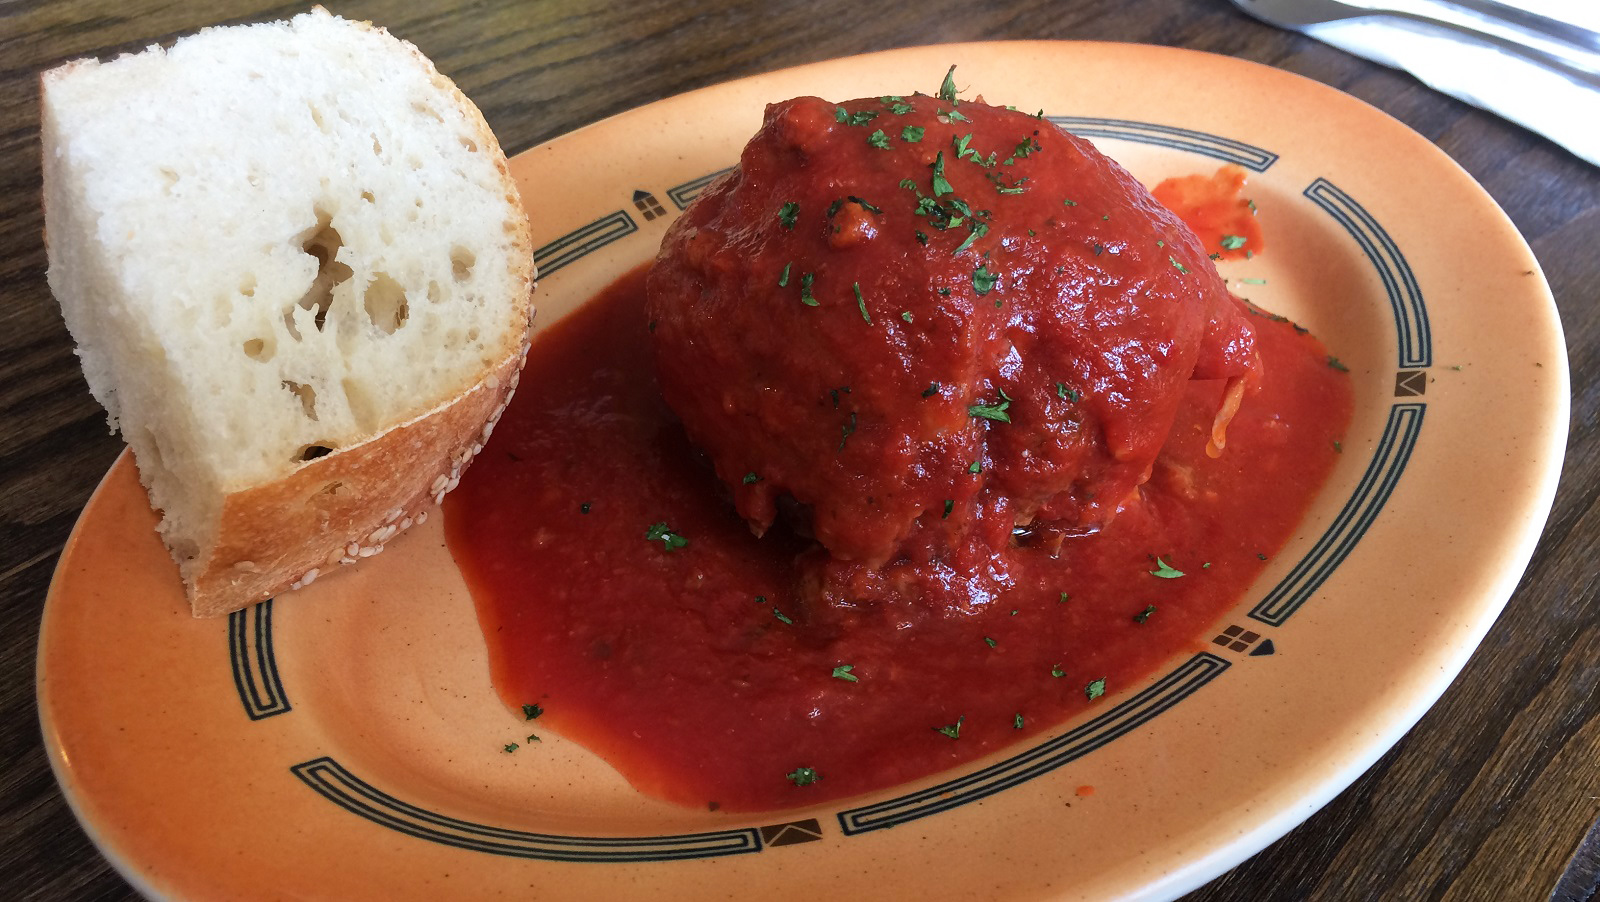 Braciole in Sunday sauce, a Wednesday lunch special at Panaro's. (Joseph Leta/Special to The News)